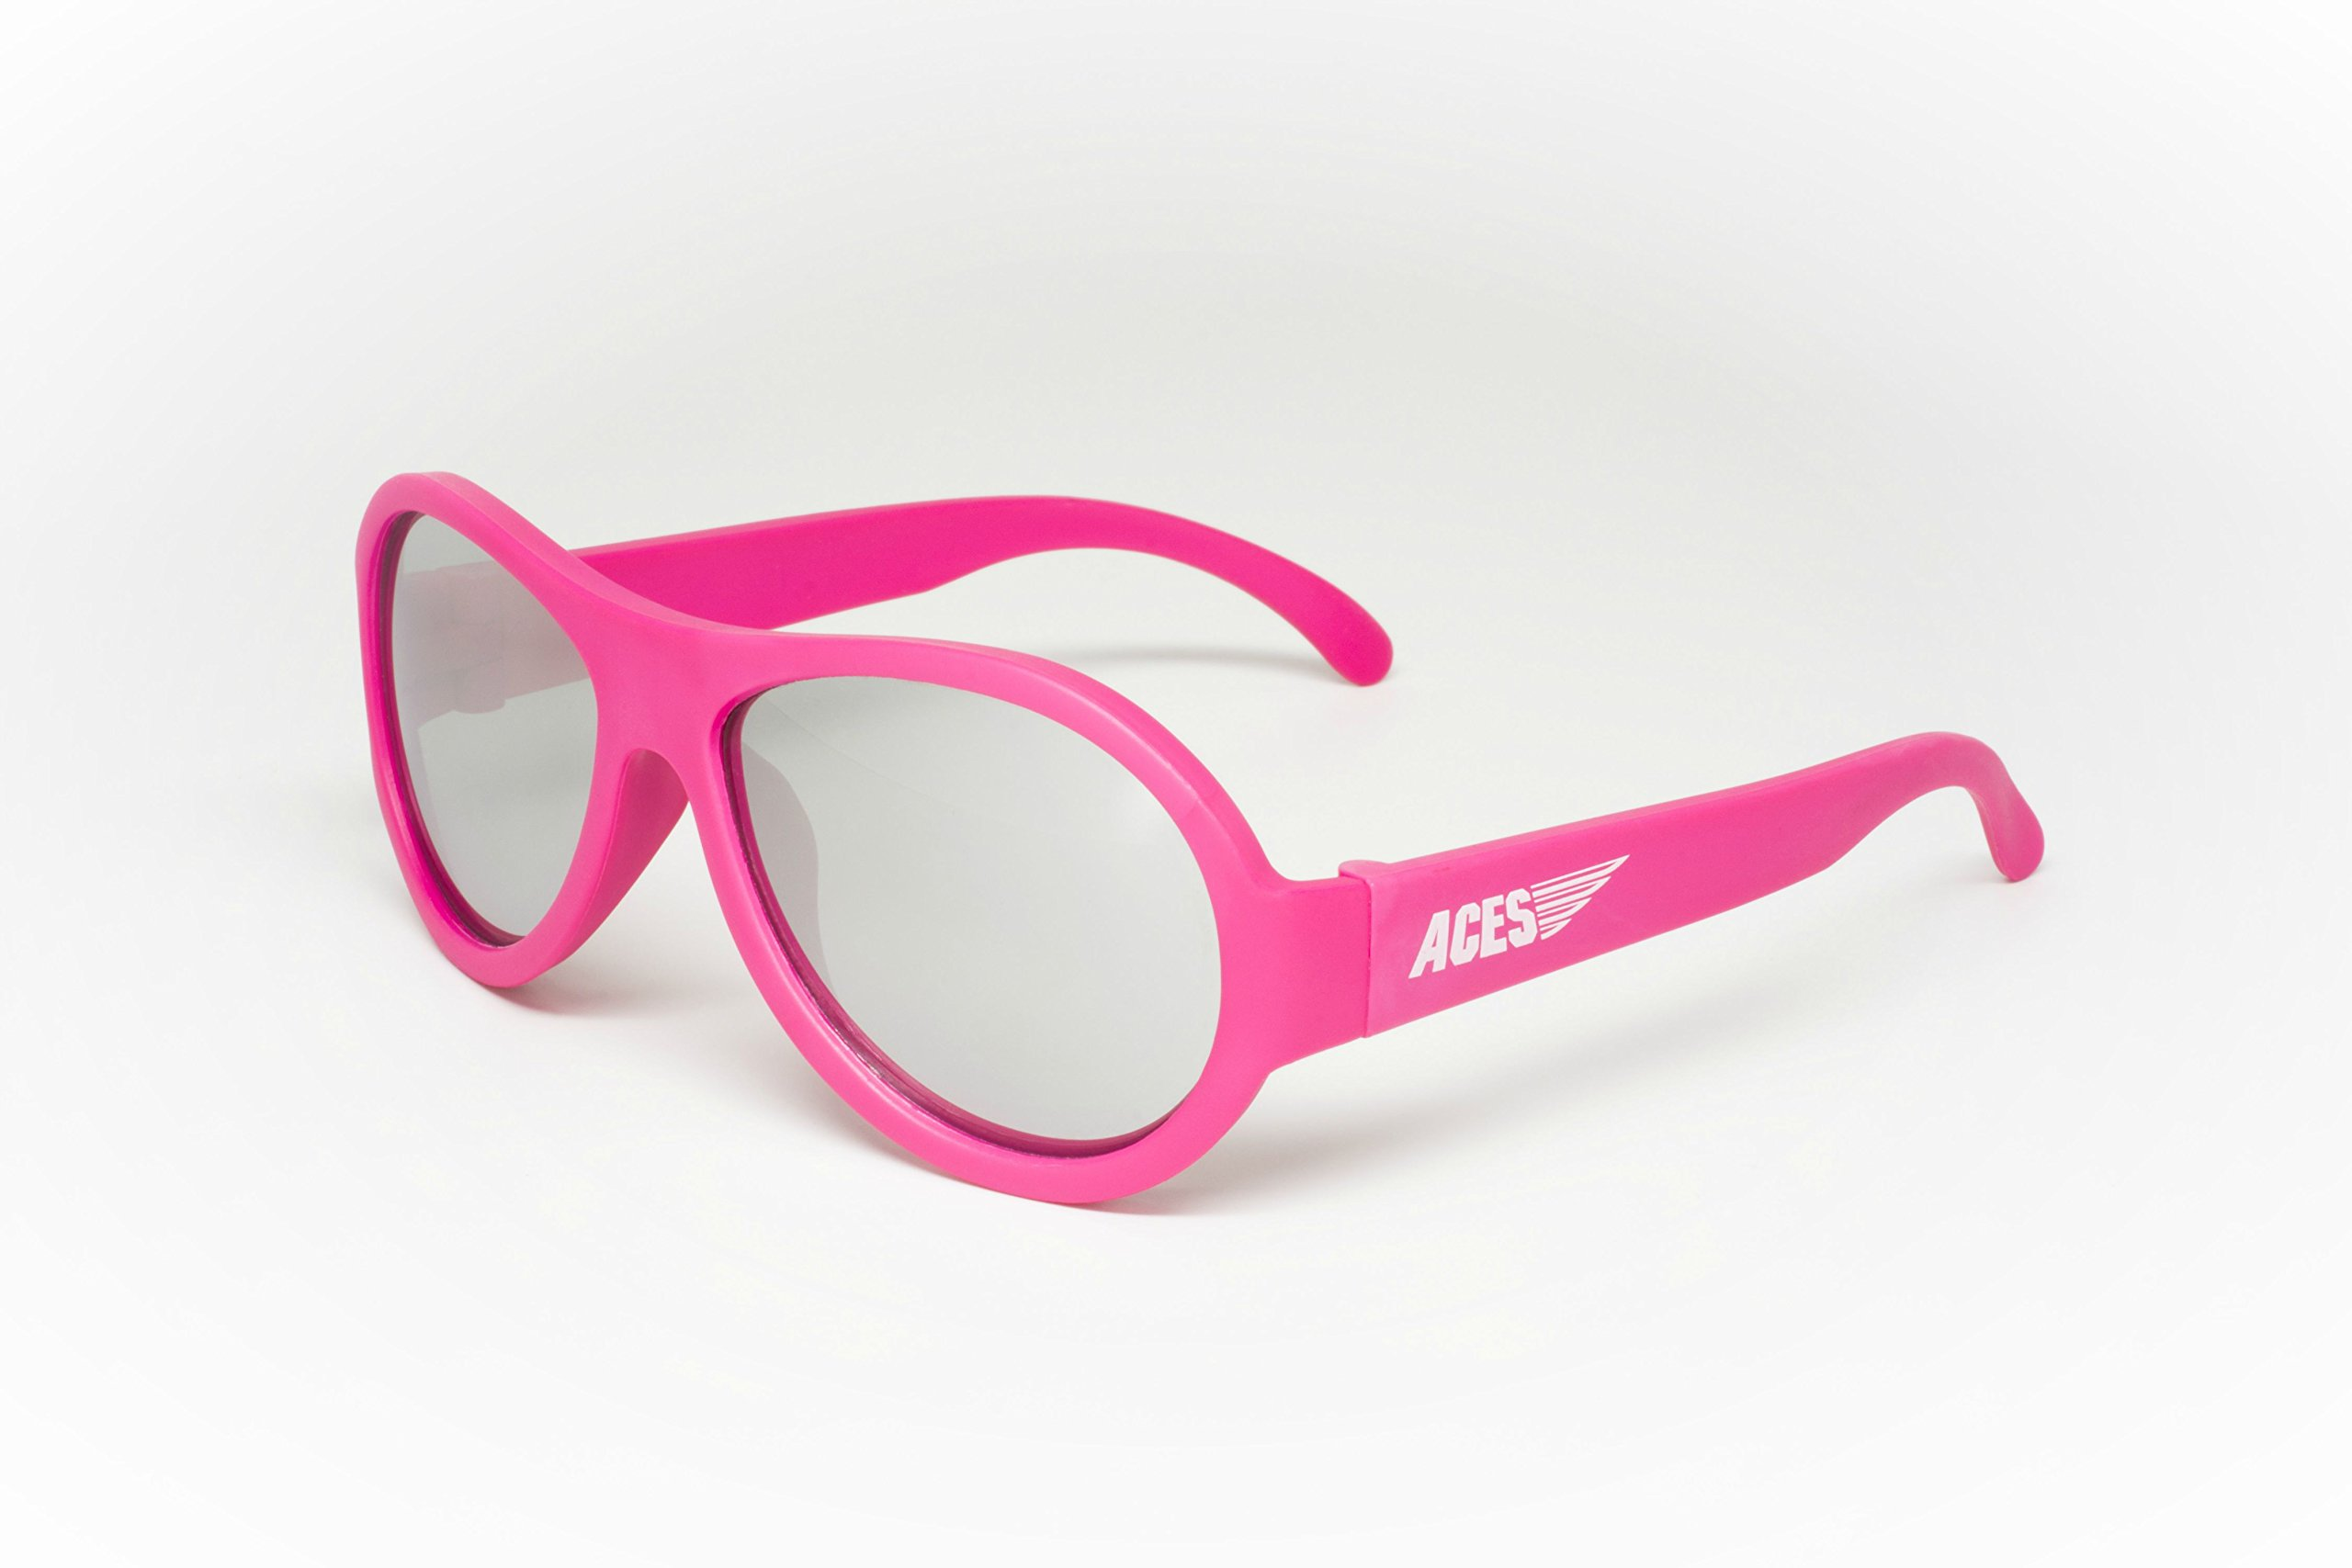 Aces - Fueled by Babiators Aviator sunglasses, Popstar Pink with Mirrored Lenses